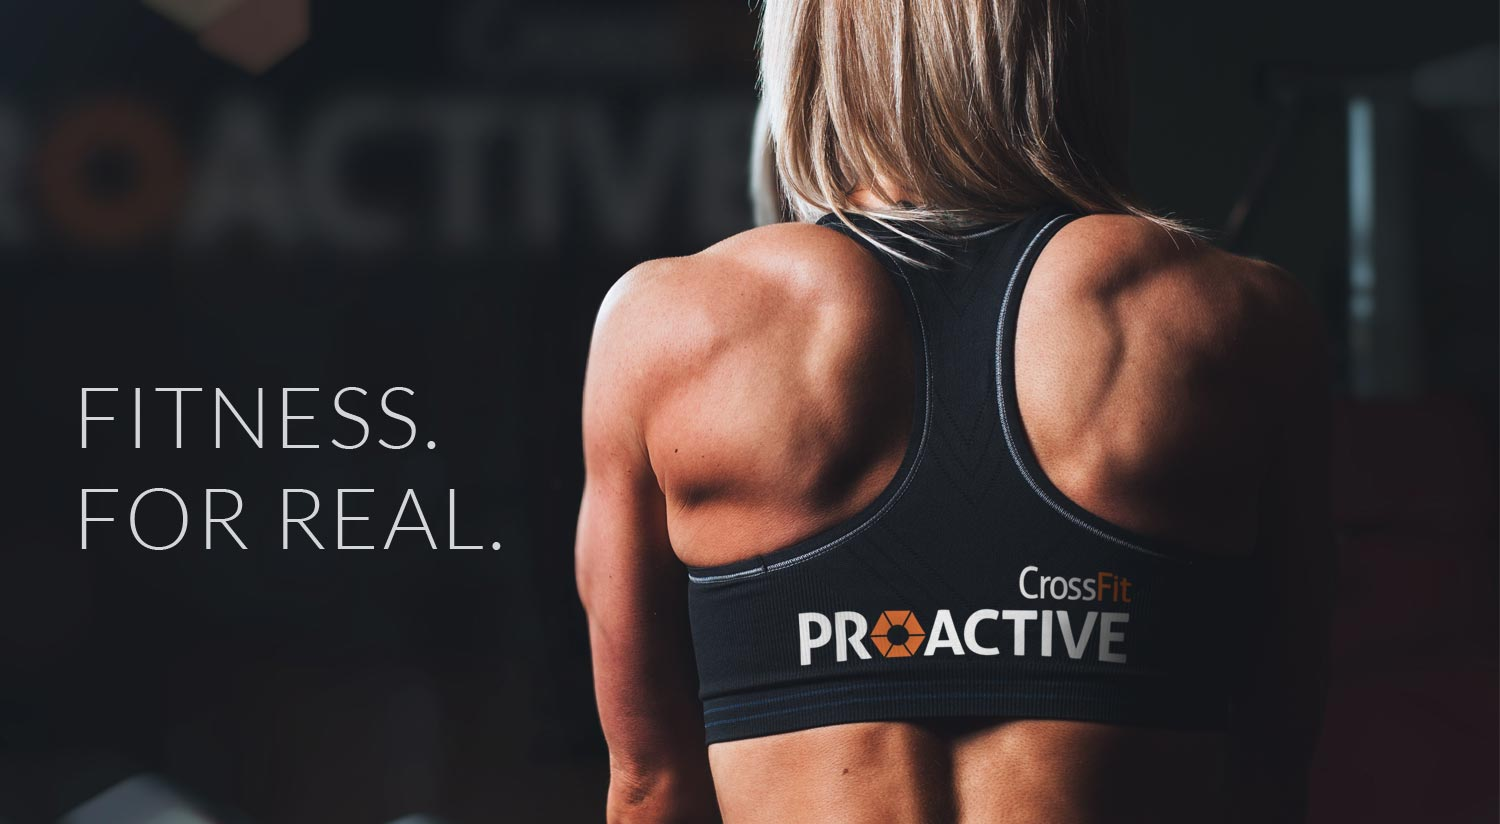 crossfit-proactive-woman